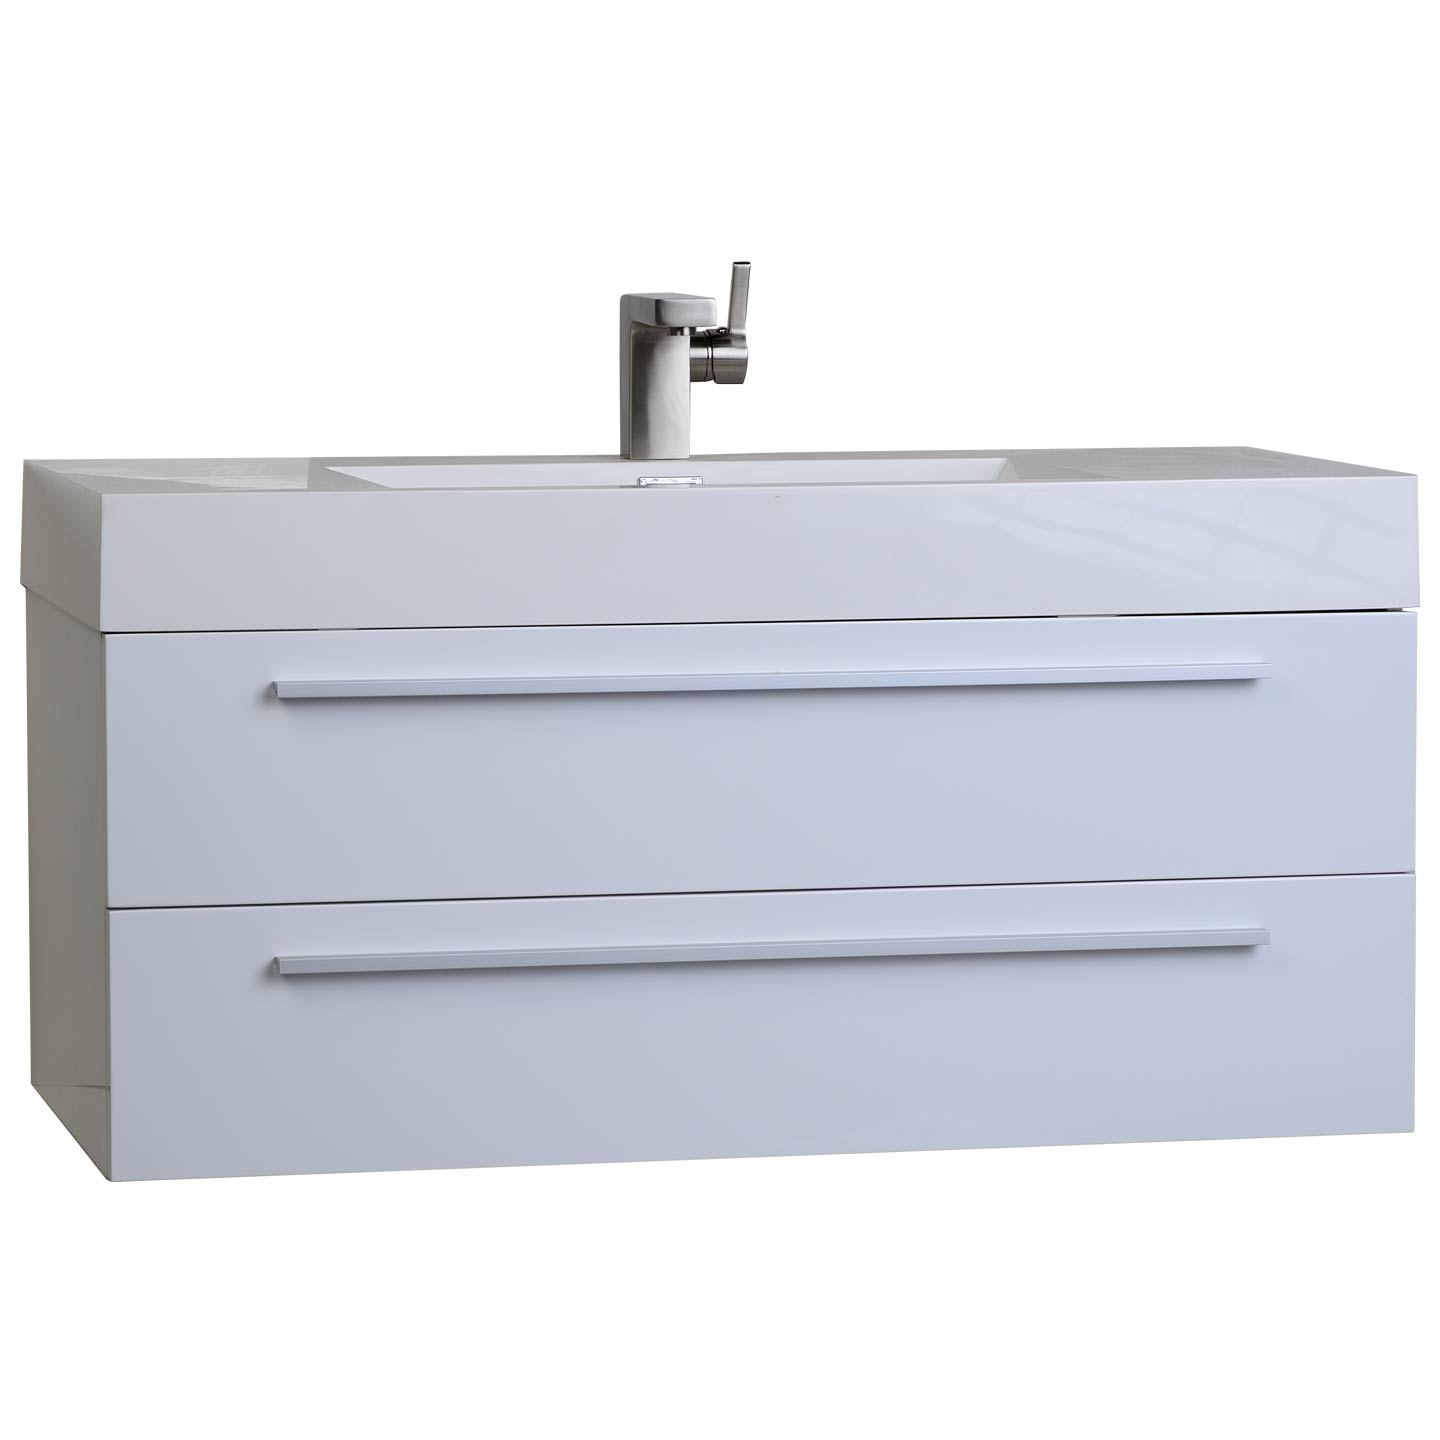 355 wall mount modern bathroom vanity in high gloss white tn m900 hgw - Modern White Bathroom Cabinets